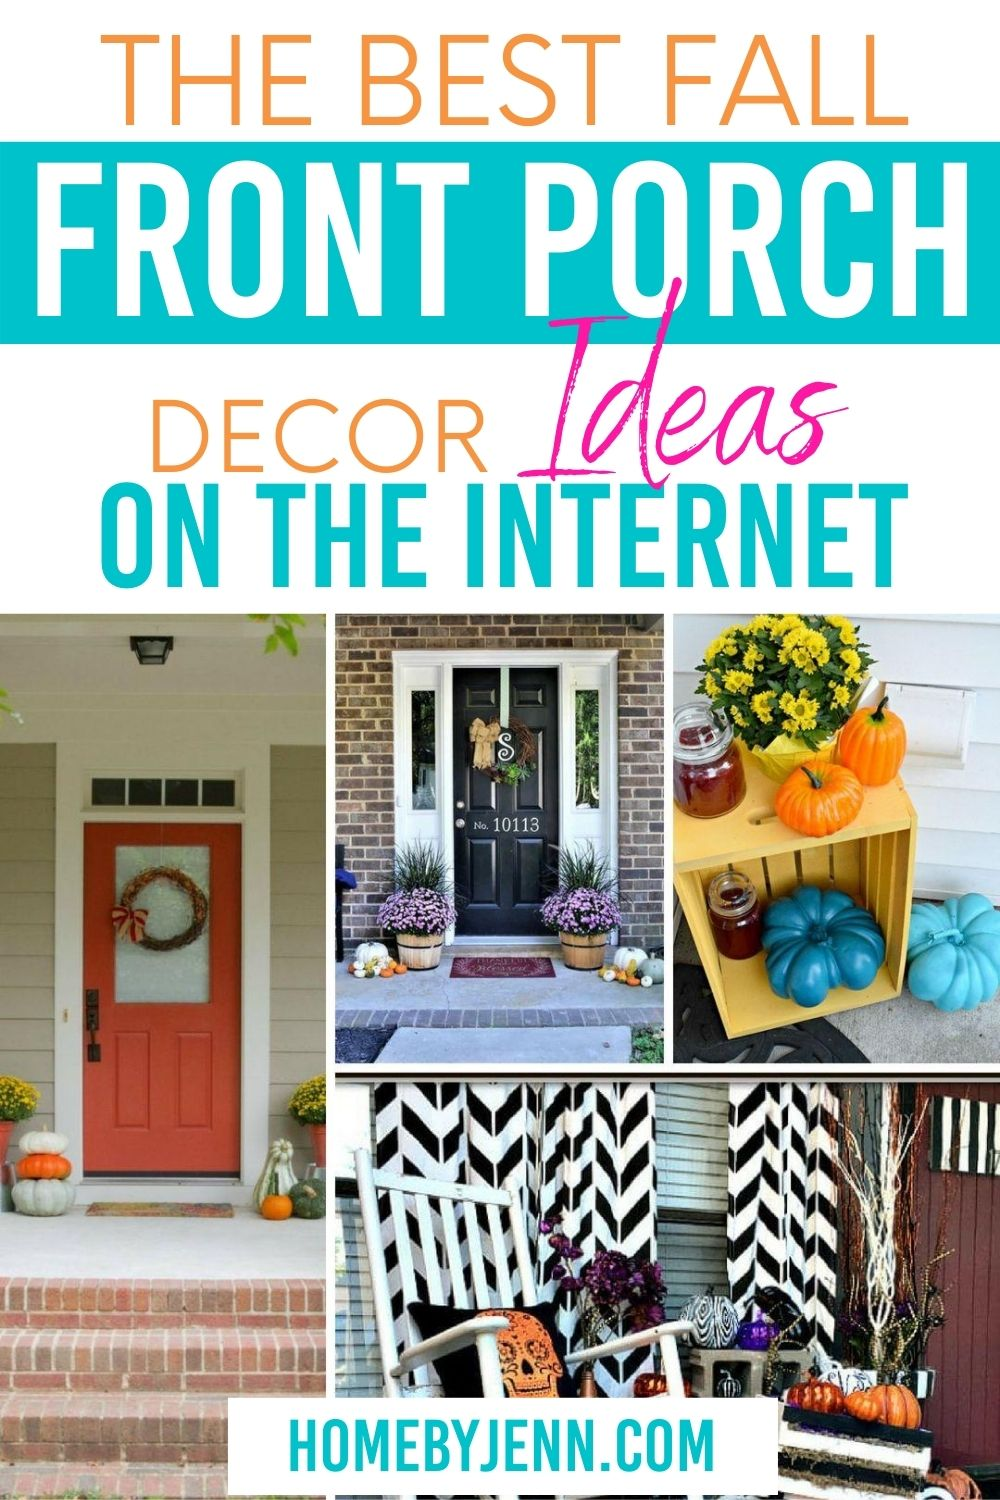 Creating an inviting fall front porch isn't as easy as it looks. By becoming inspired you too can enjoy a decorated front porch for fall that your neighbors will want to duplicate. In this post, you'll see some of the best fall front porch decor ideas on the internet. #home #homedecor #fall #falldecorating #falldecor #falldecorideas #frontporch #fallfrontporch via @homebyjenn